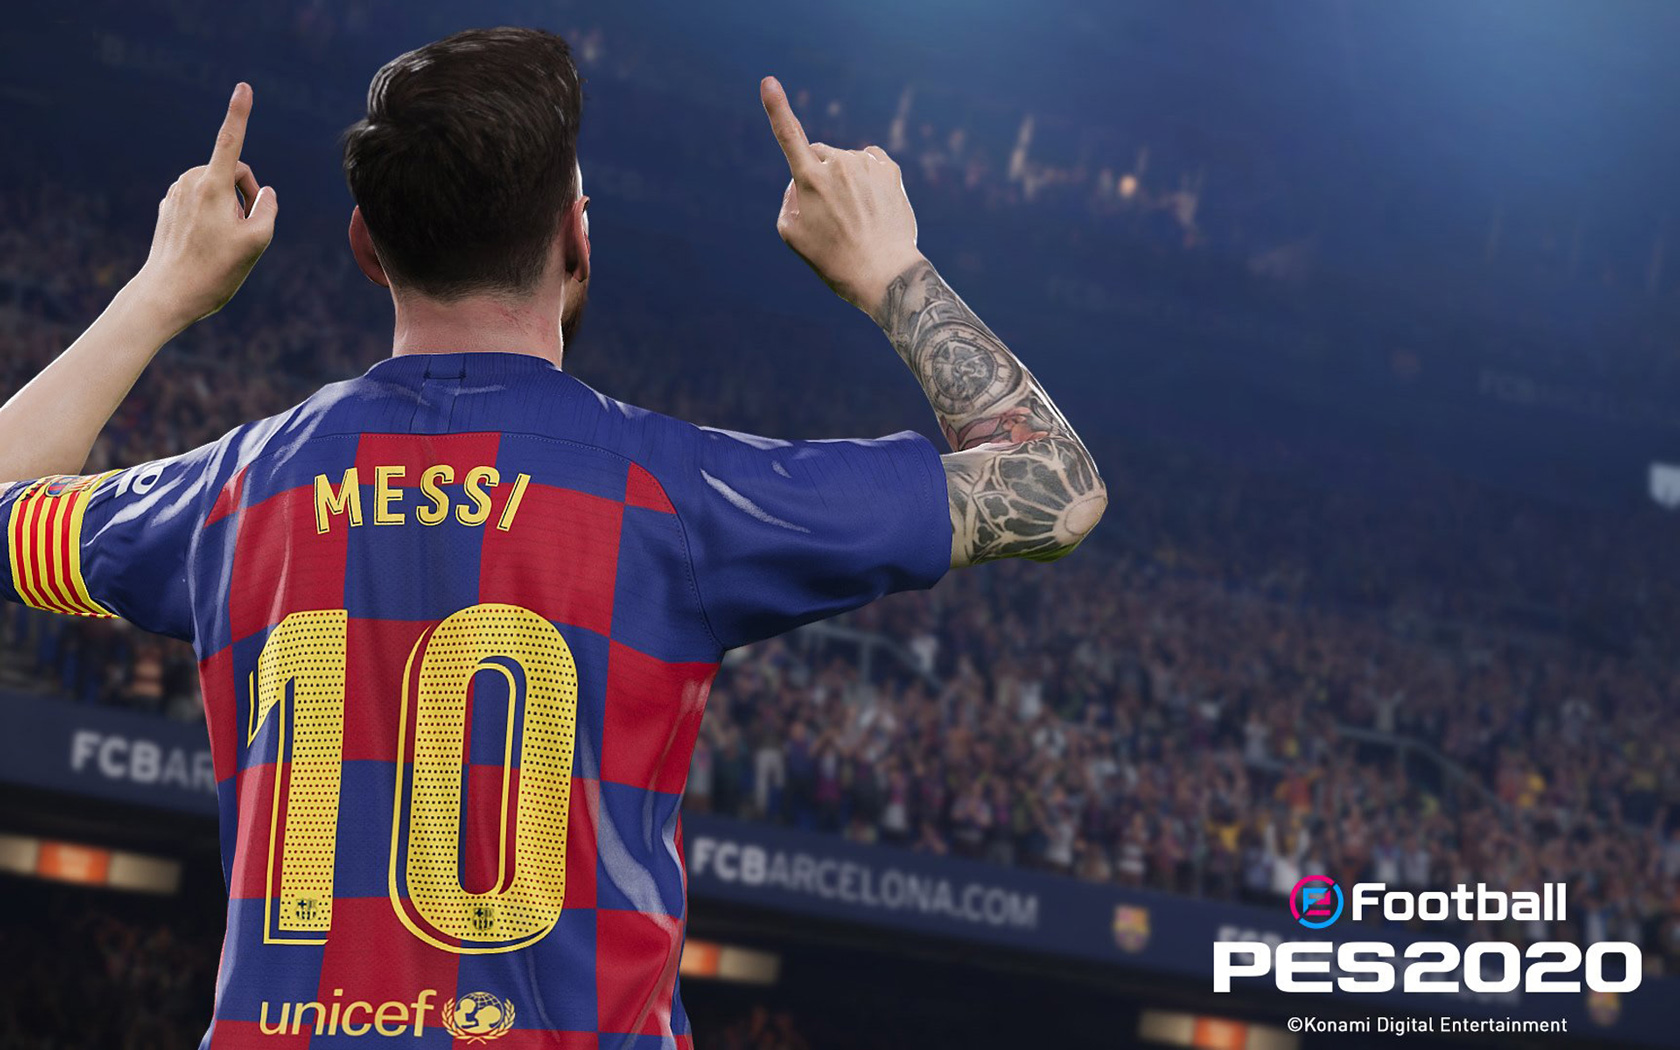 Free eFootball PES 2020 Wallpaper in 1680x1050